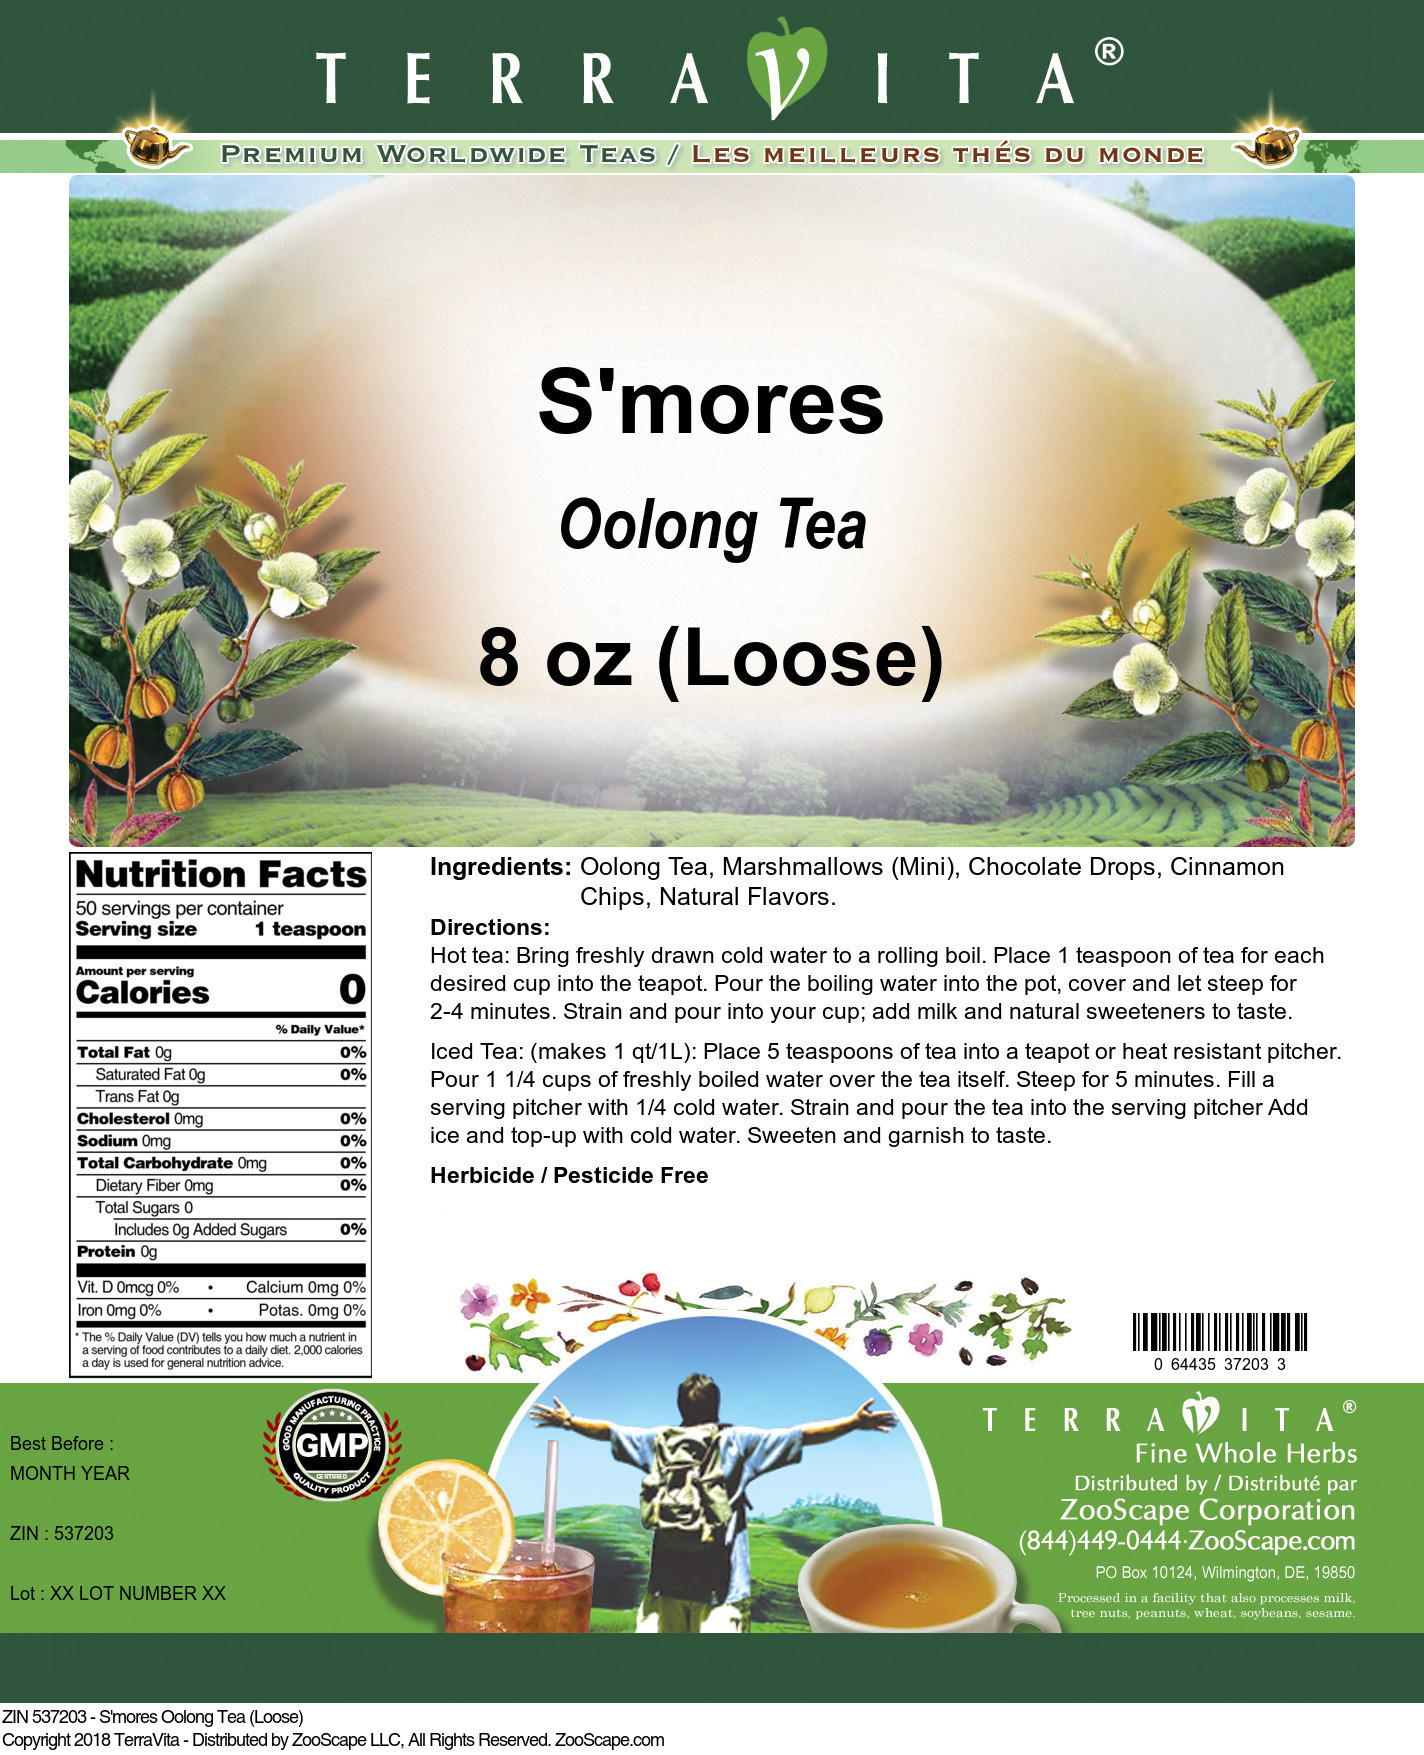 S'mores Oolong Tea (Loose)